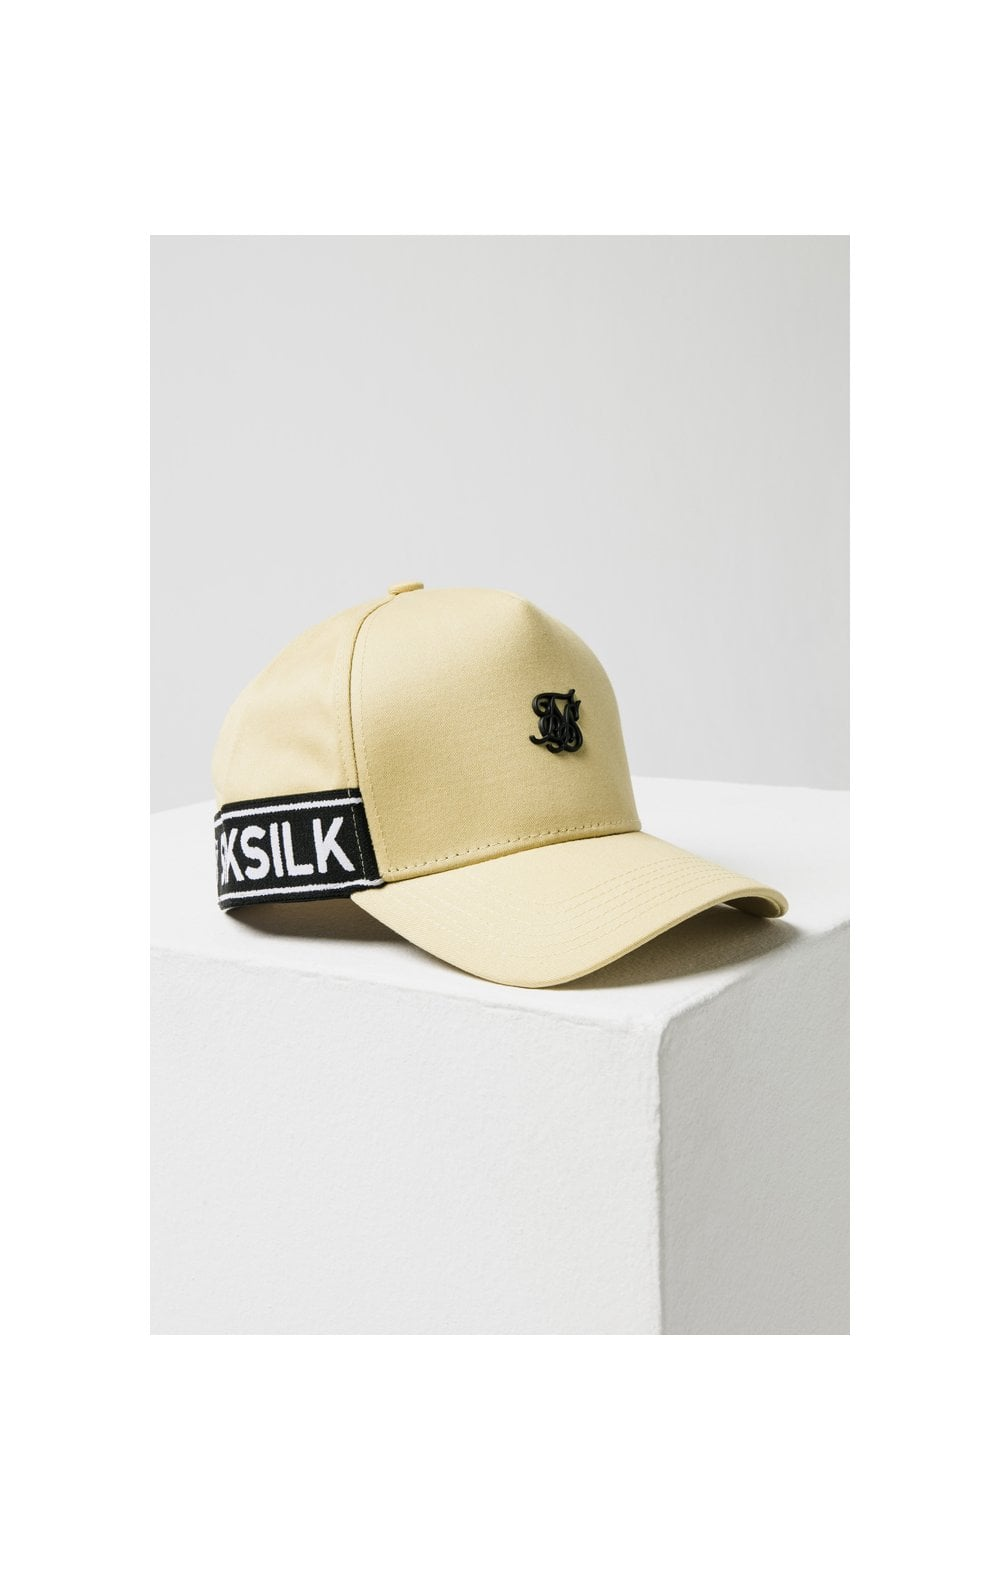 SikSilk Stretch Fit Full Trucker - Mustard (4)